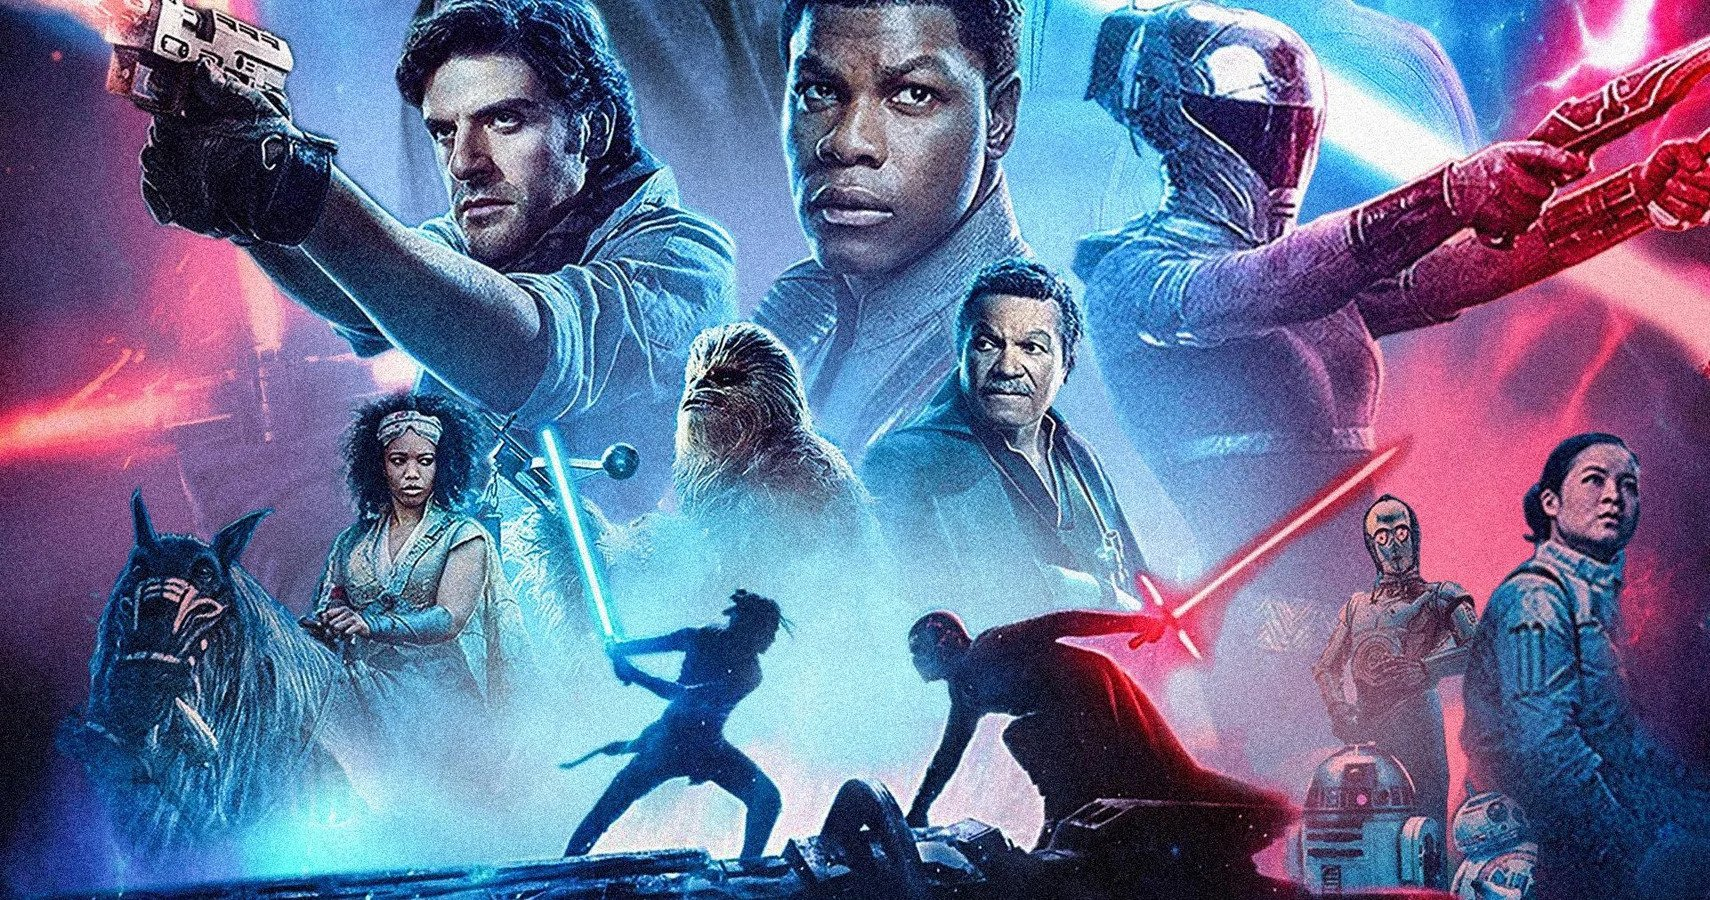 Star Wars: The Rise of Skywalker various characters on the poster